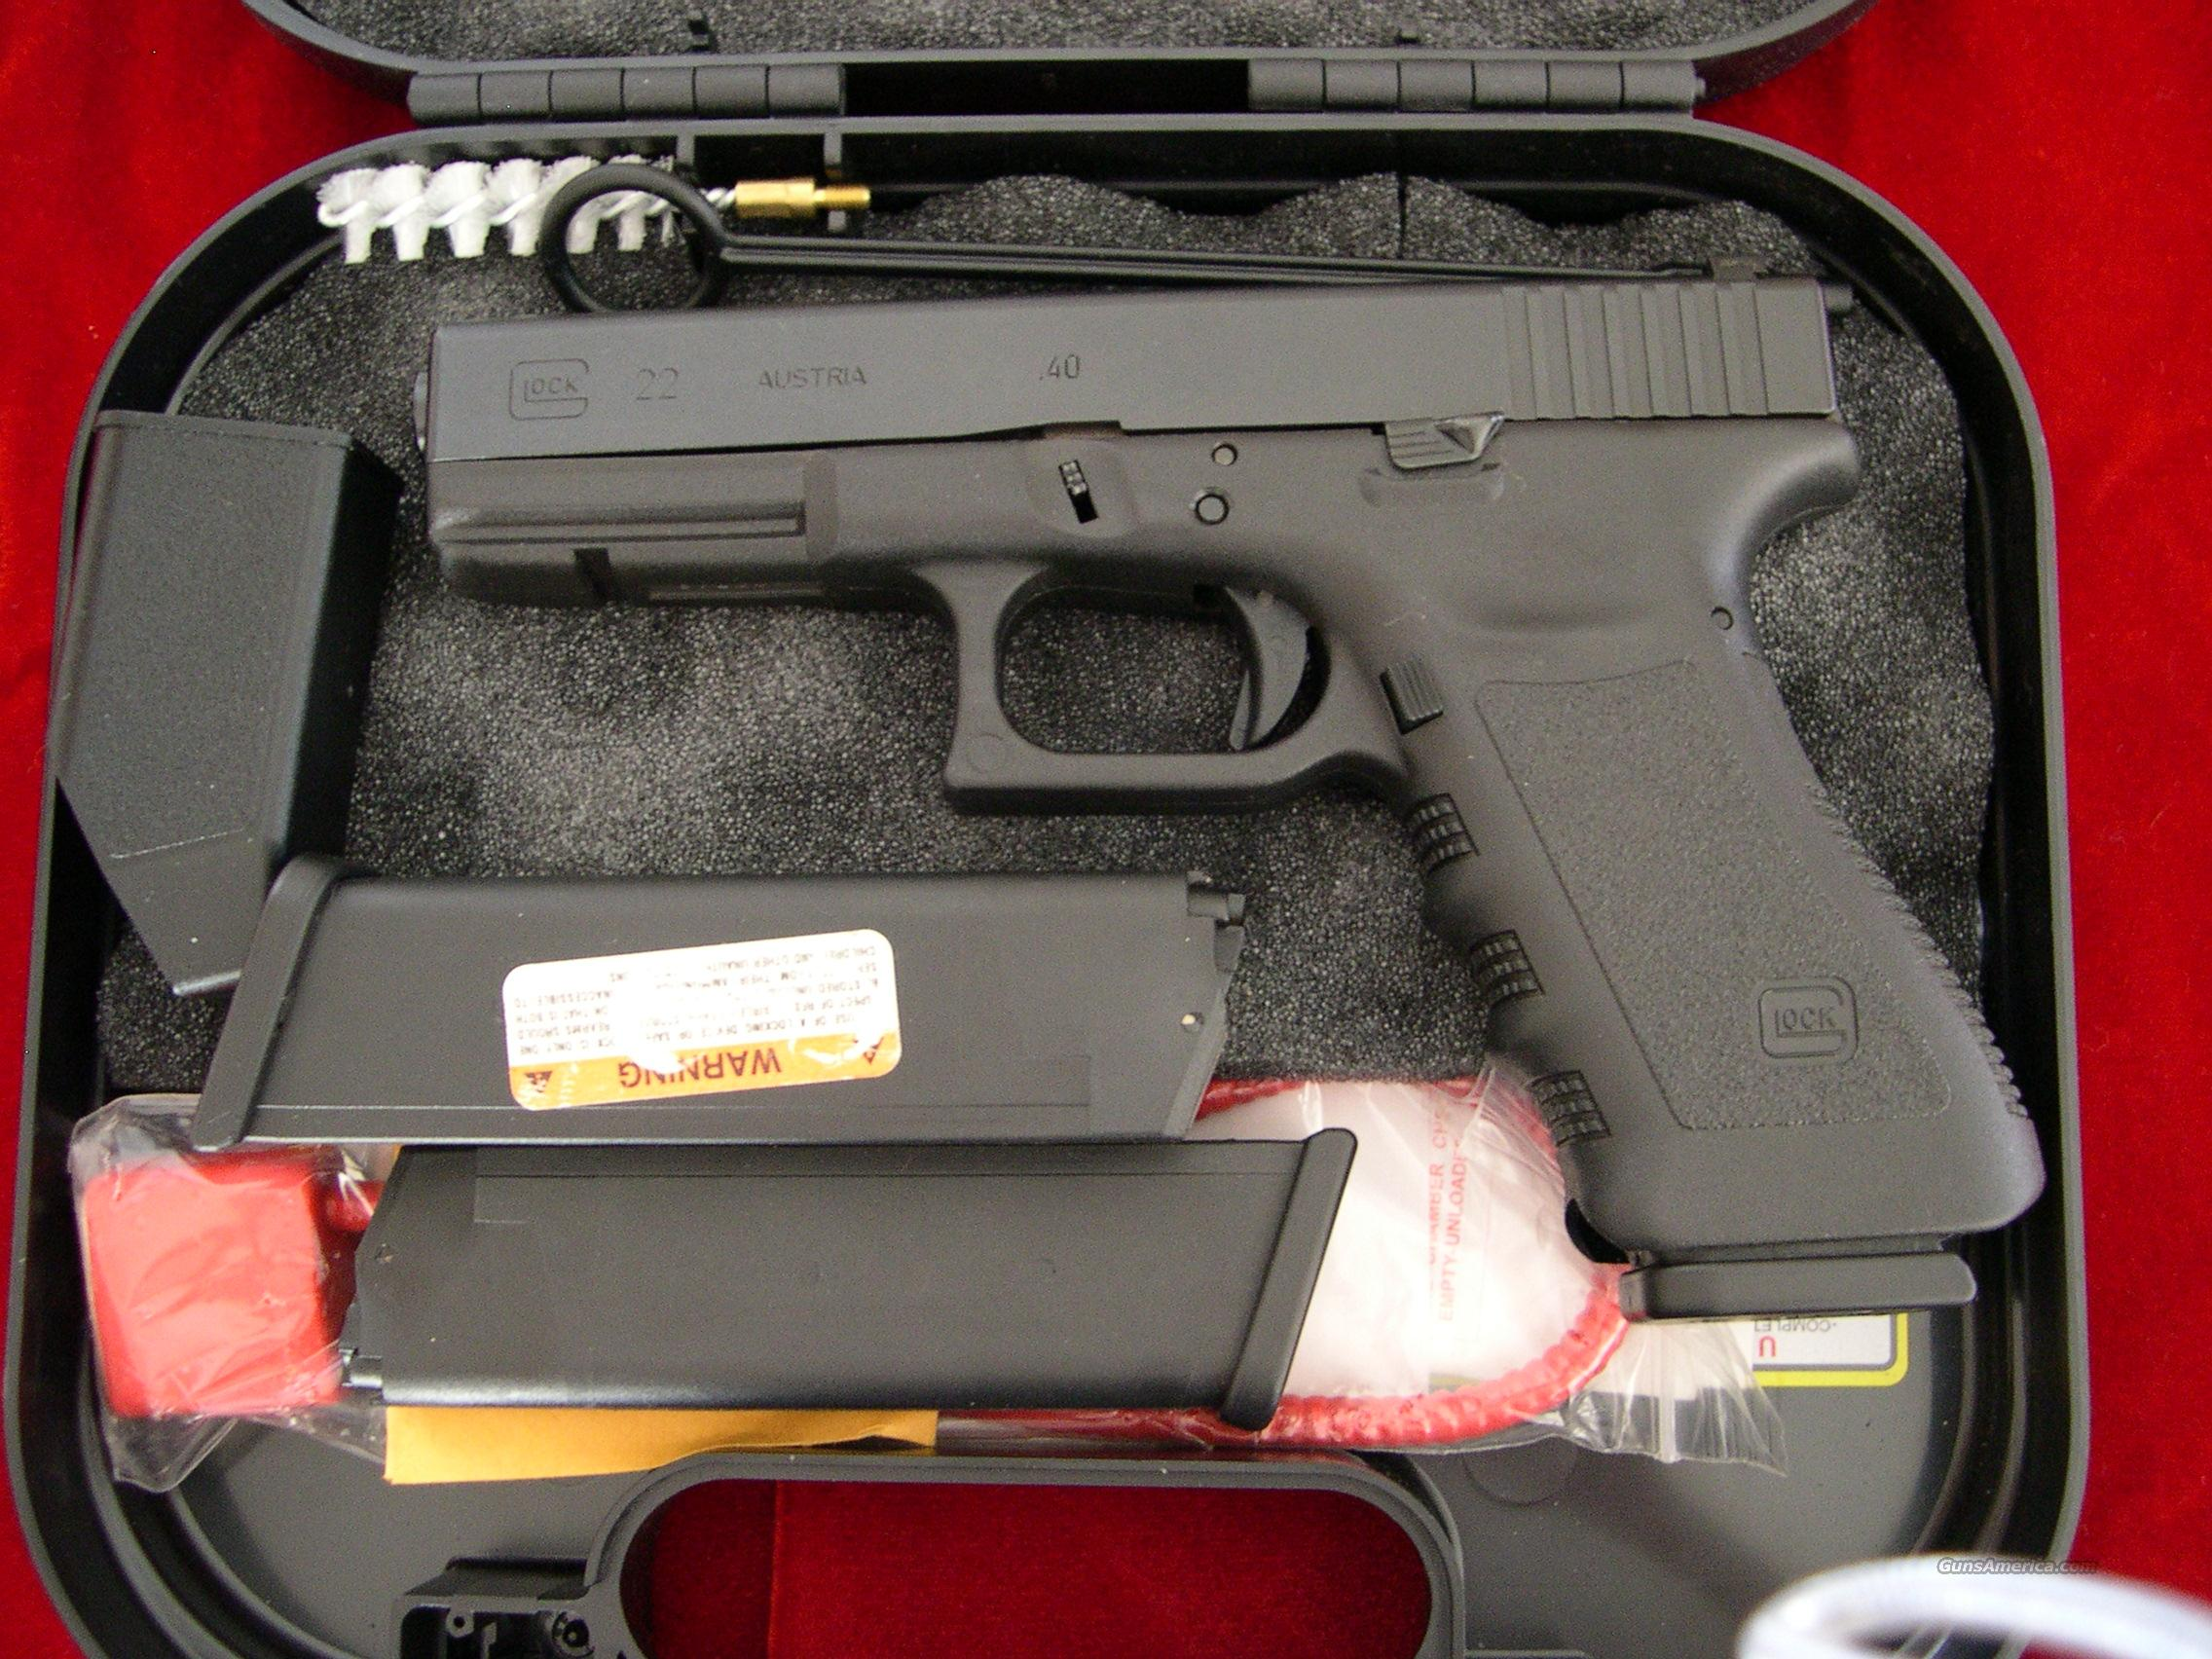 Glock model 22. in 40 cal, Tijicon N.S.  *as new*  Guns > Pistols > Glock Pistols > 22